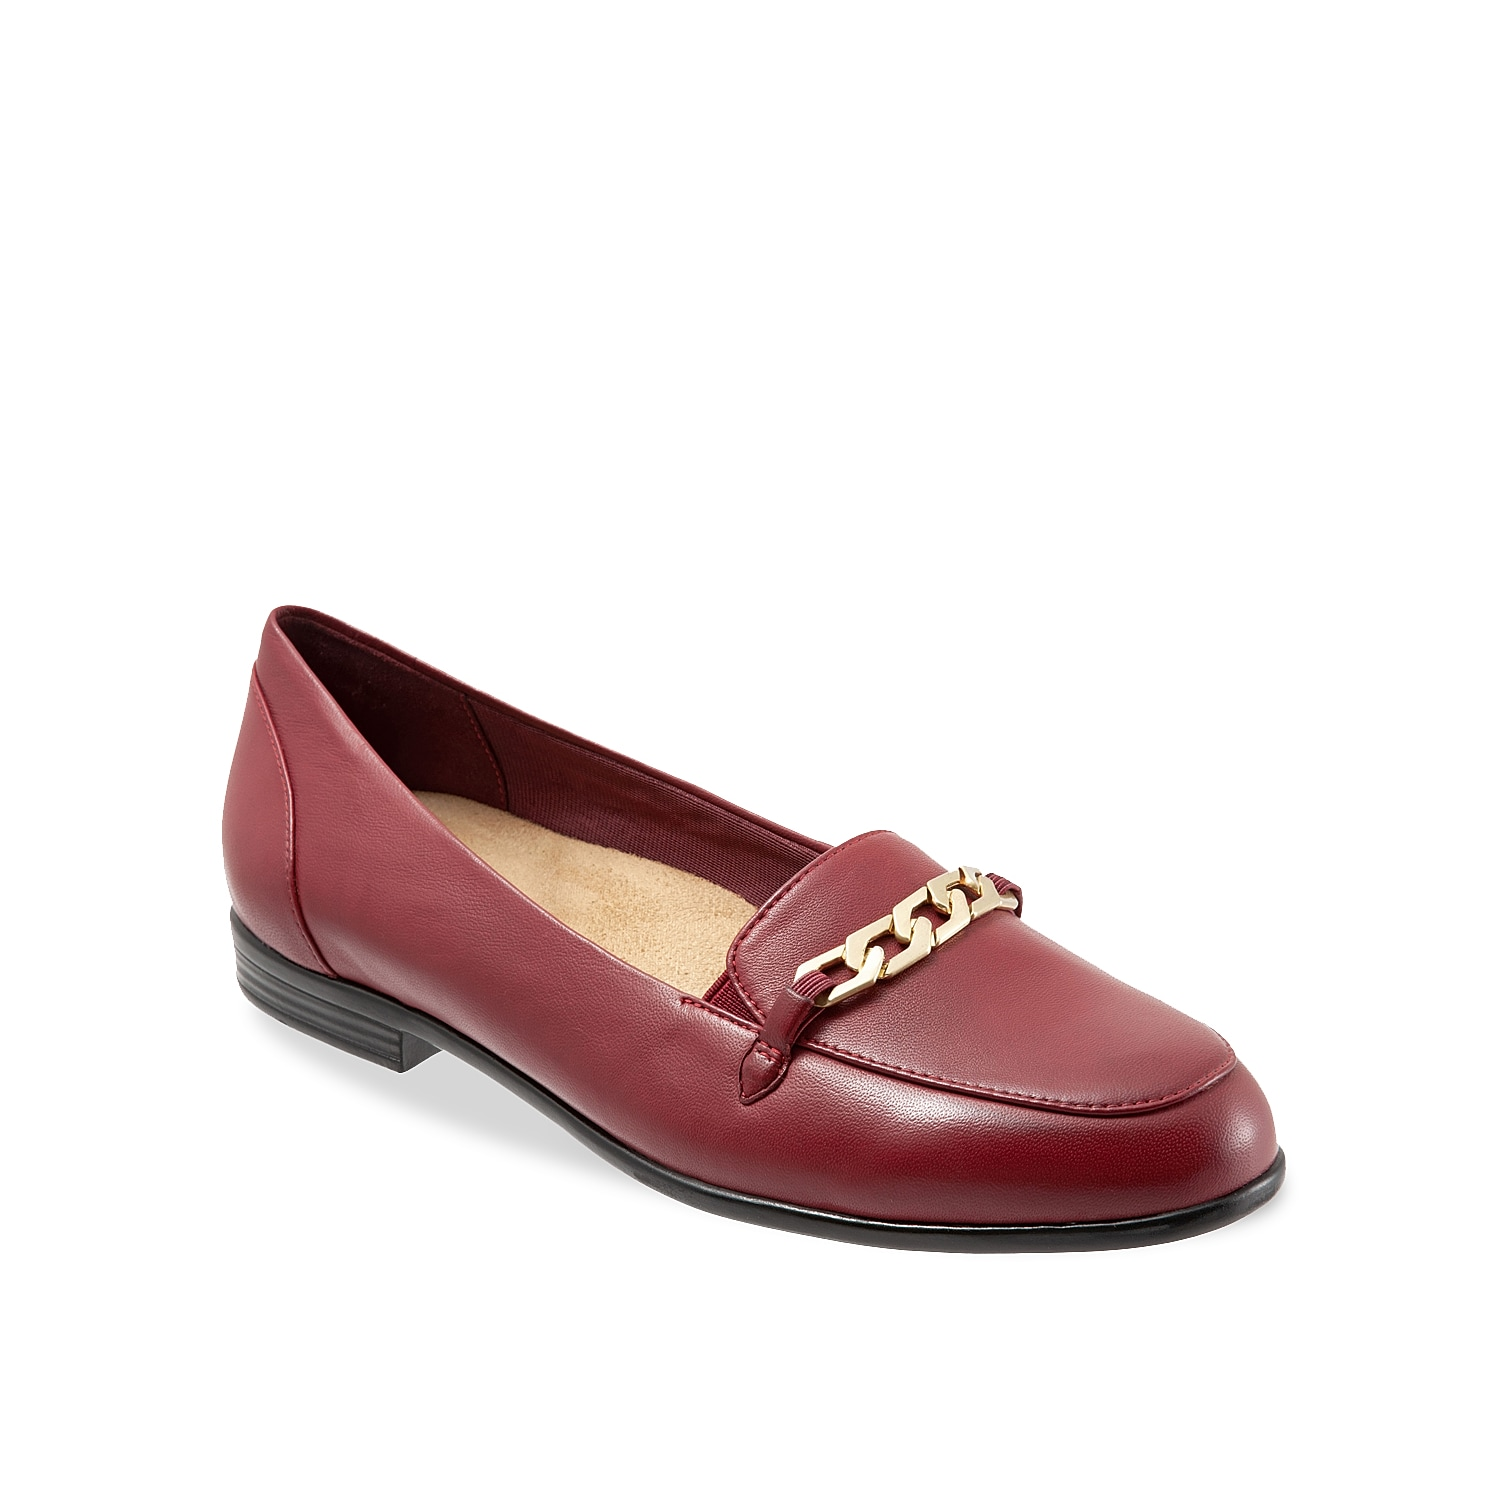 Get the perfect streamlined look with the Anastasia loafer from Trotters. Highlighted with a slim block heel and a decorative chain ornament, this elegant slip-on features antimicrobial lining and a low profile heel for all day comfort.